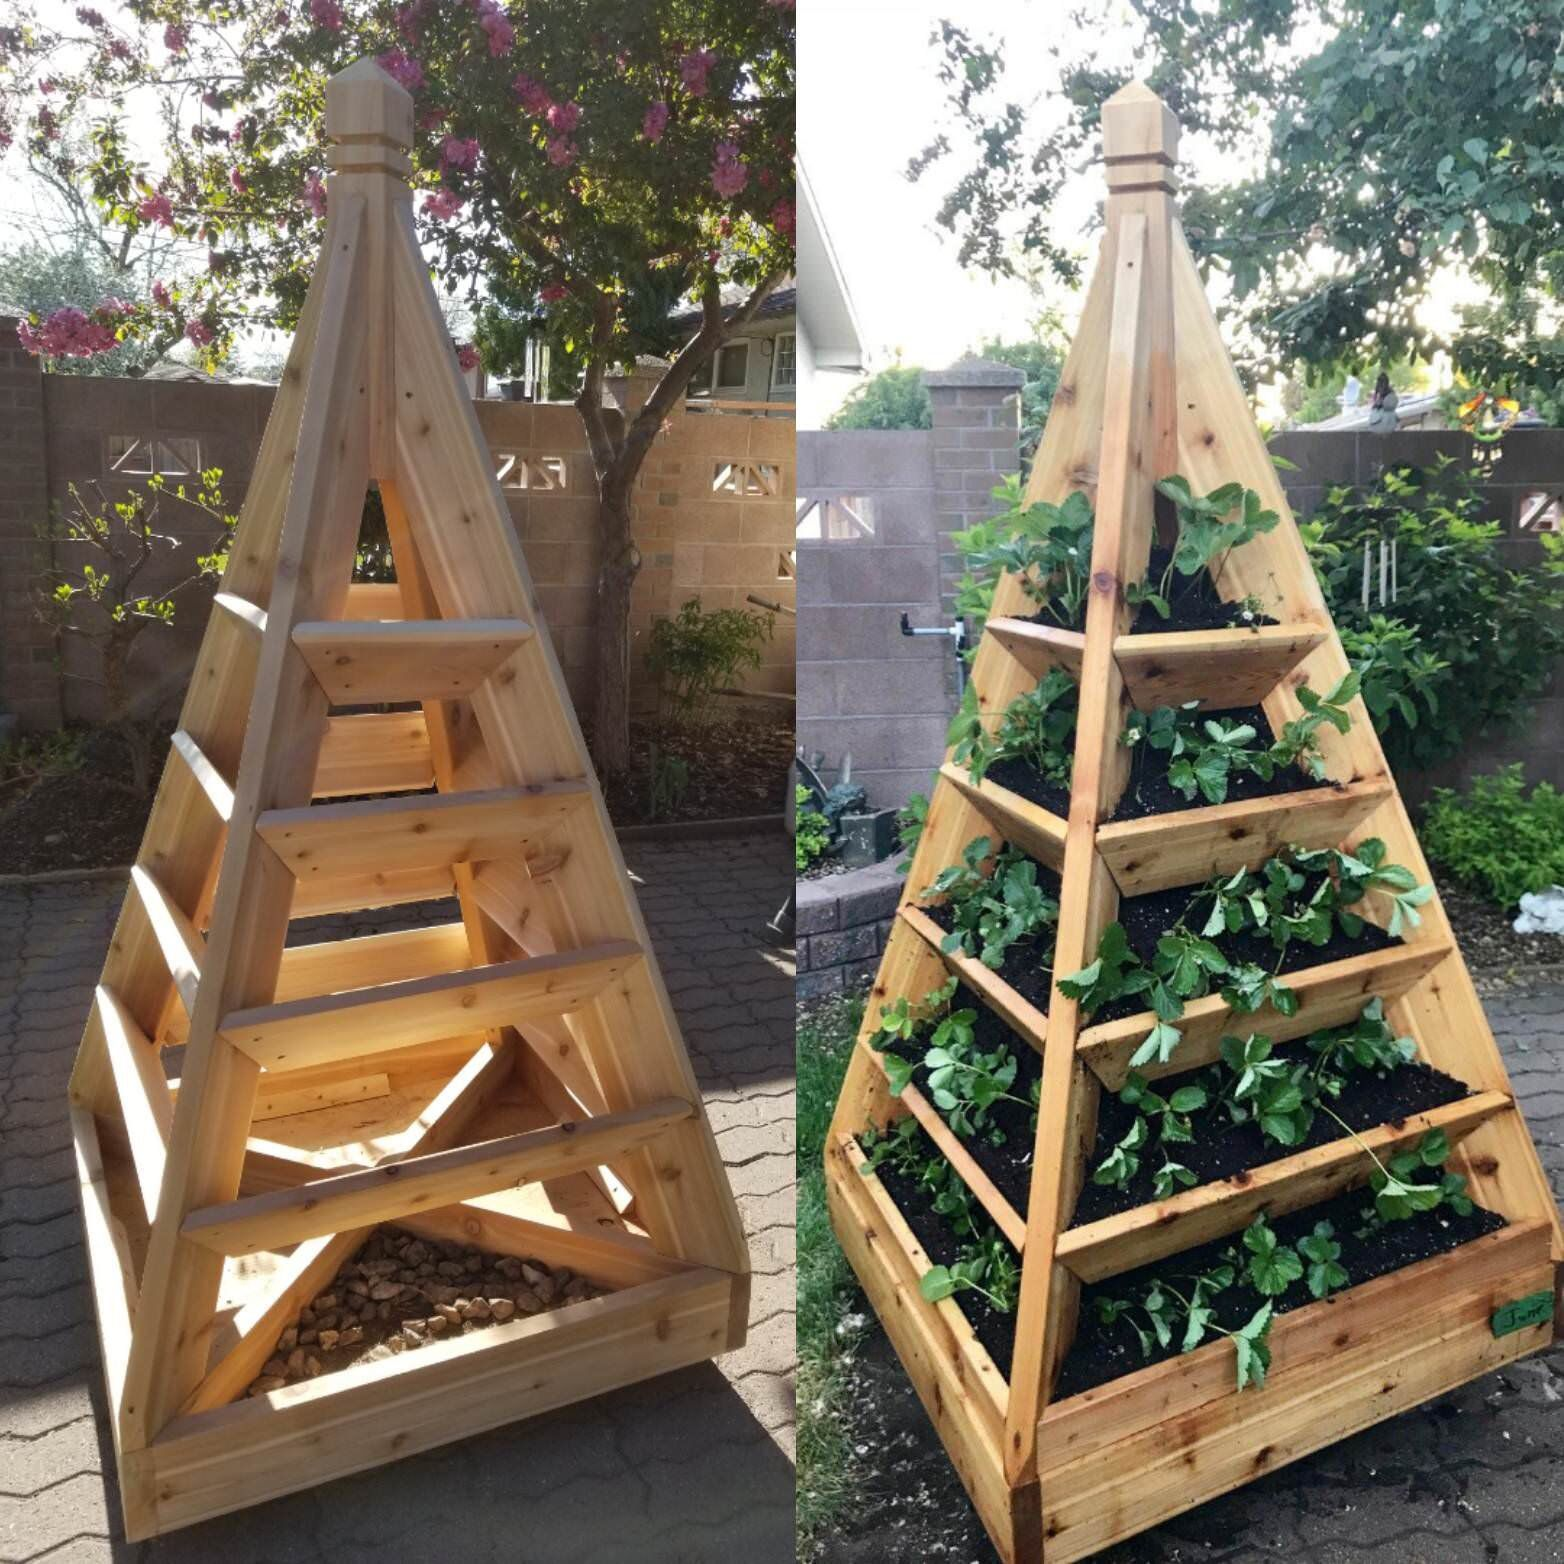 How To Make A Slot Together Pyramid Planter Gardening Pallets